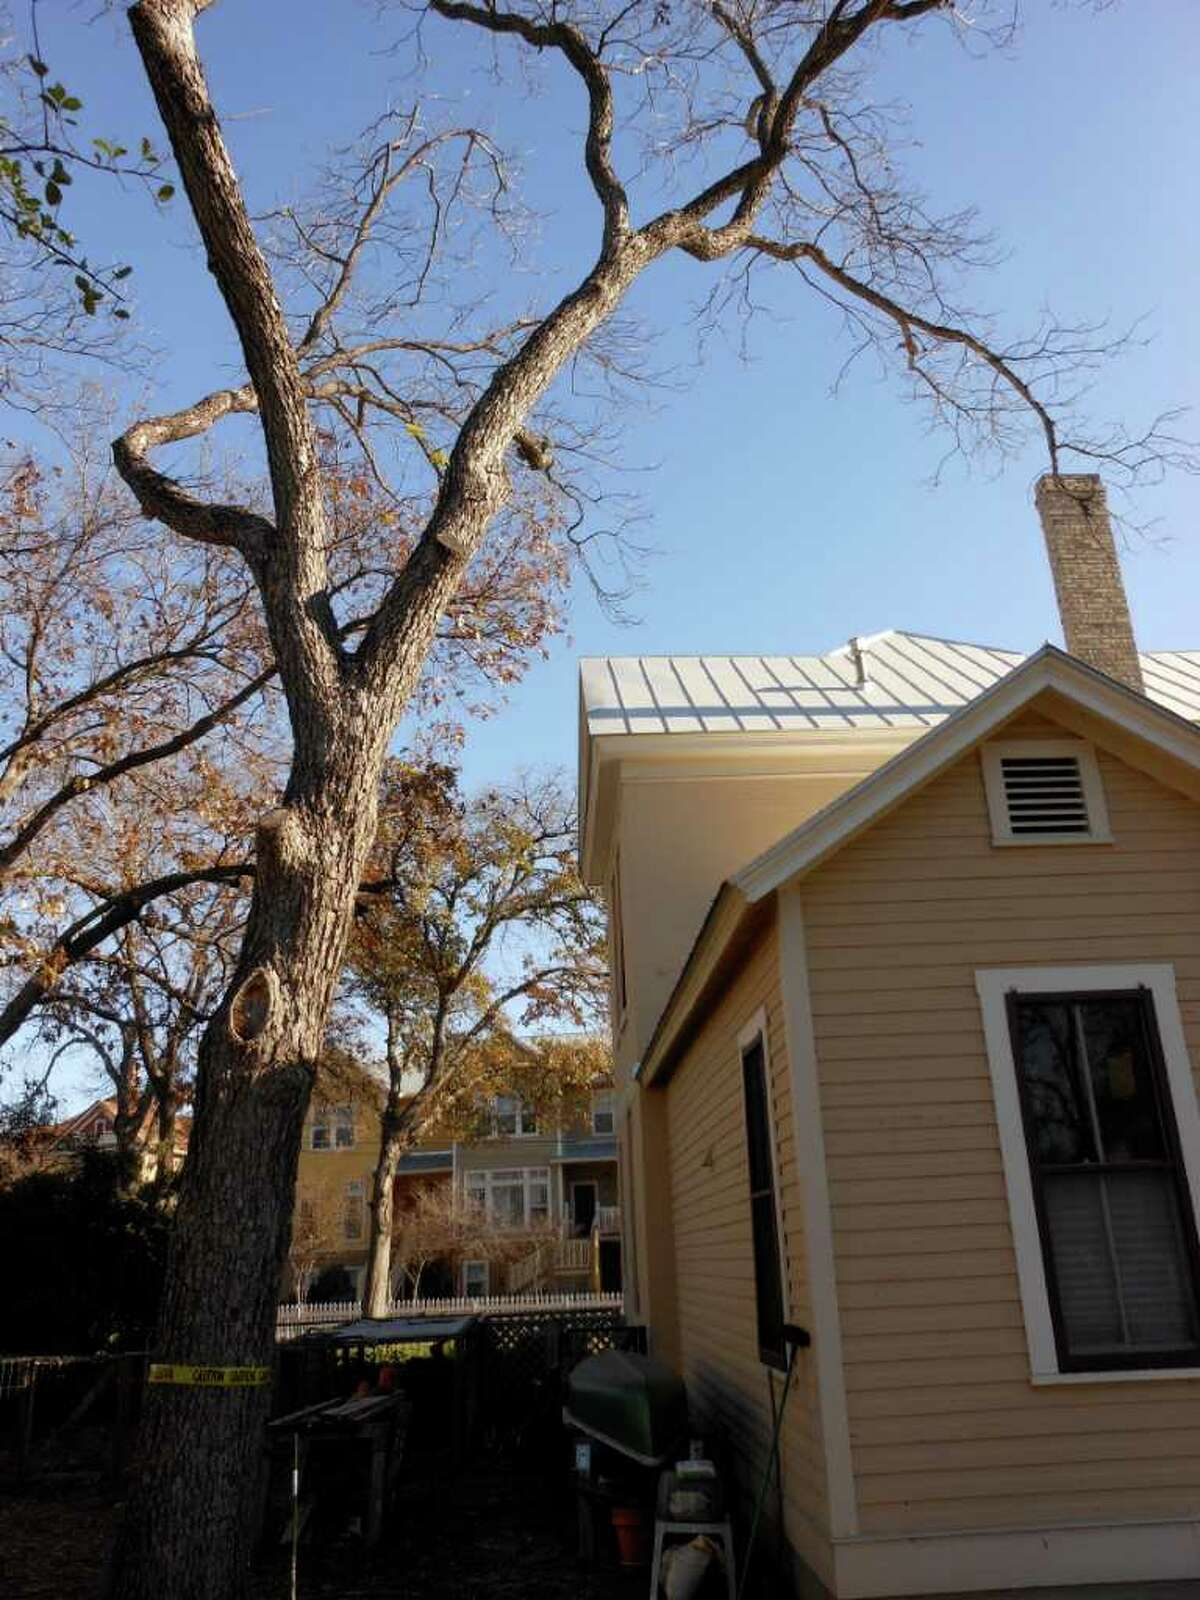 When a pecan tree began dropping limbs over their house, Ralph and Ruth Wells knew it had to come down. They plan to have artist Peter Zubiate make a dining table from the wood.